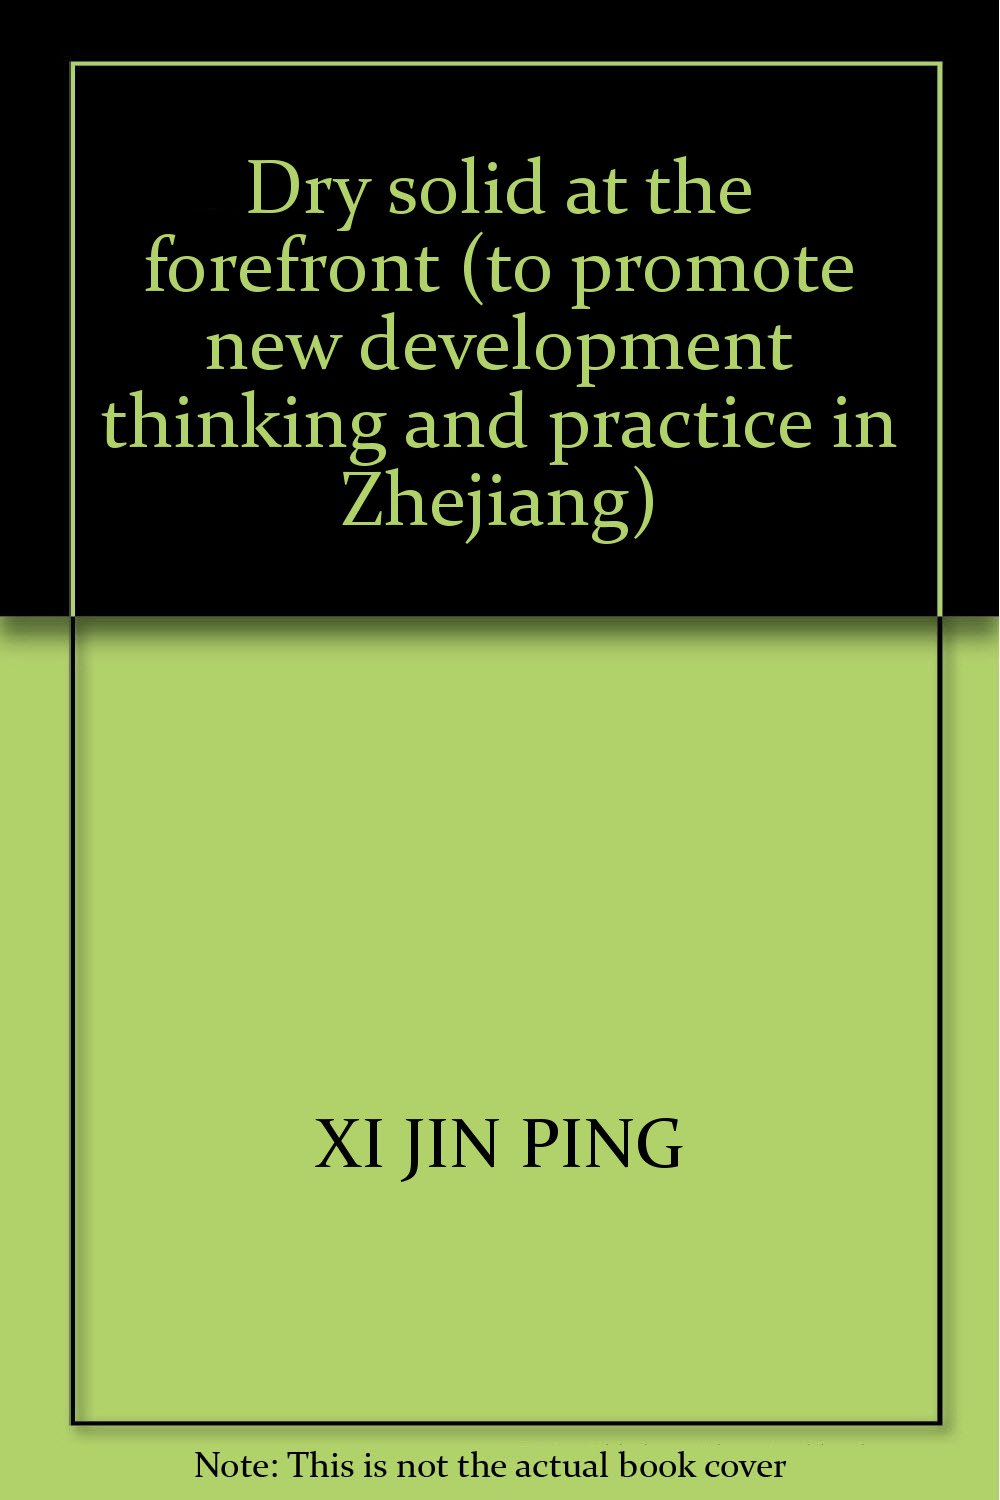 Download Dry solid at the forefront (to promote new development thinking and practice in Zhejiang) pdf epub